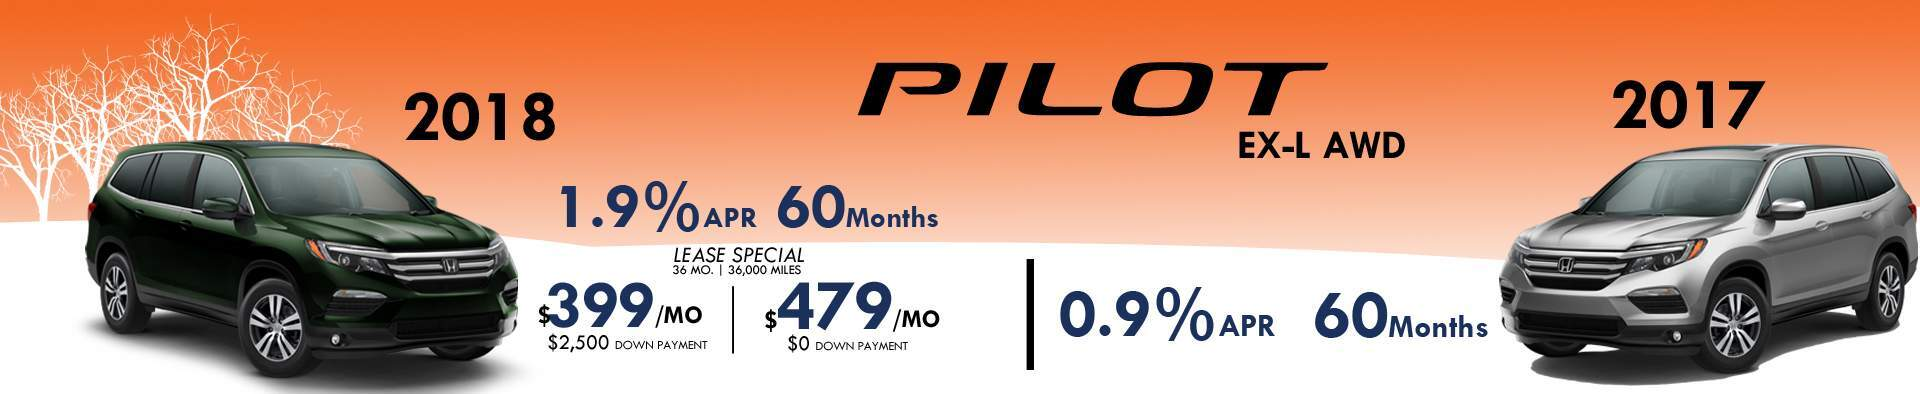 2018 Pilot January Specials 1.9% for 60 months